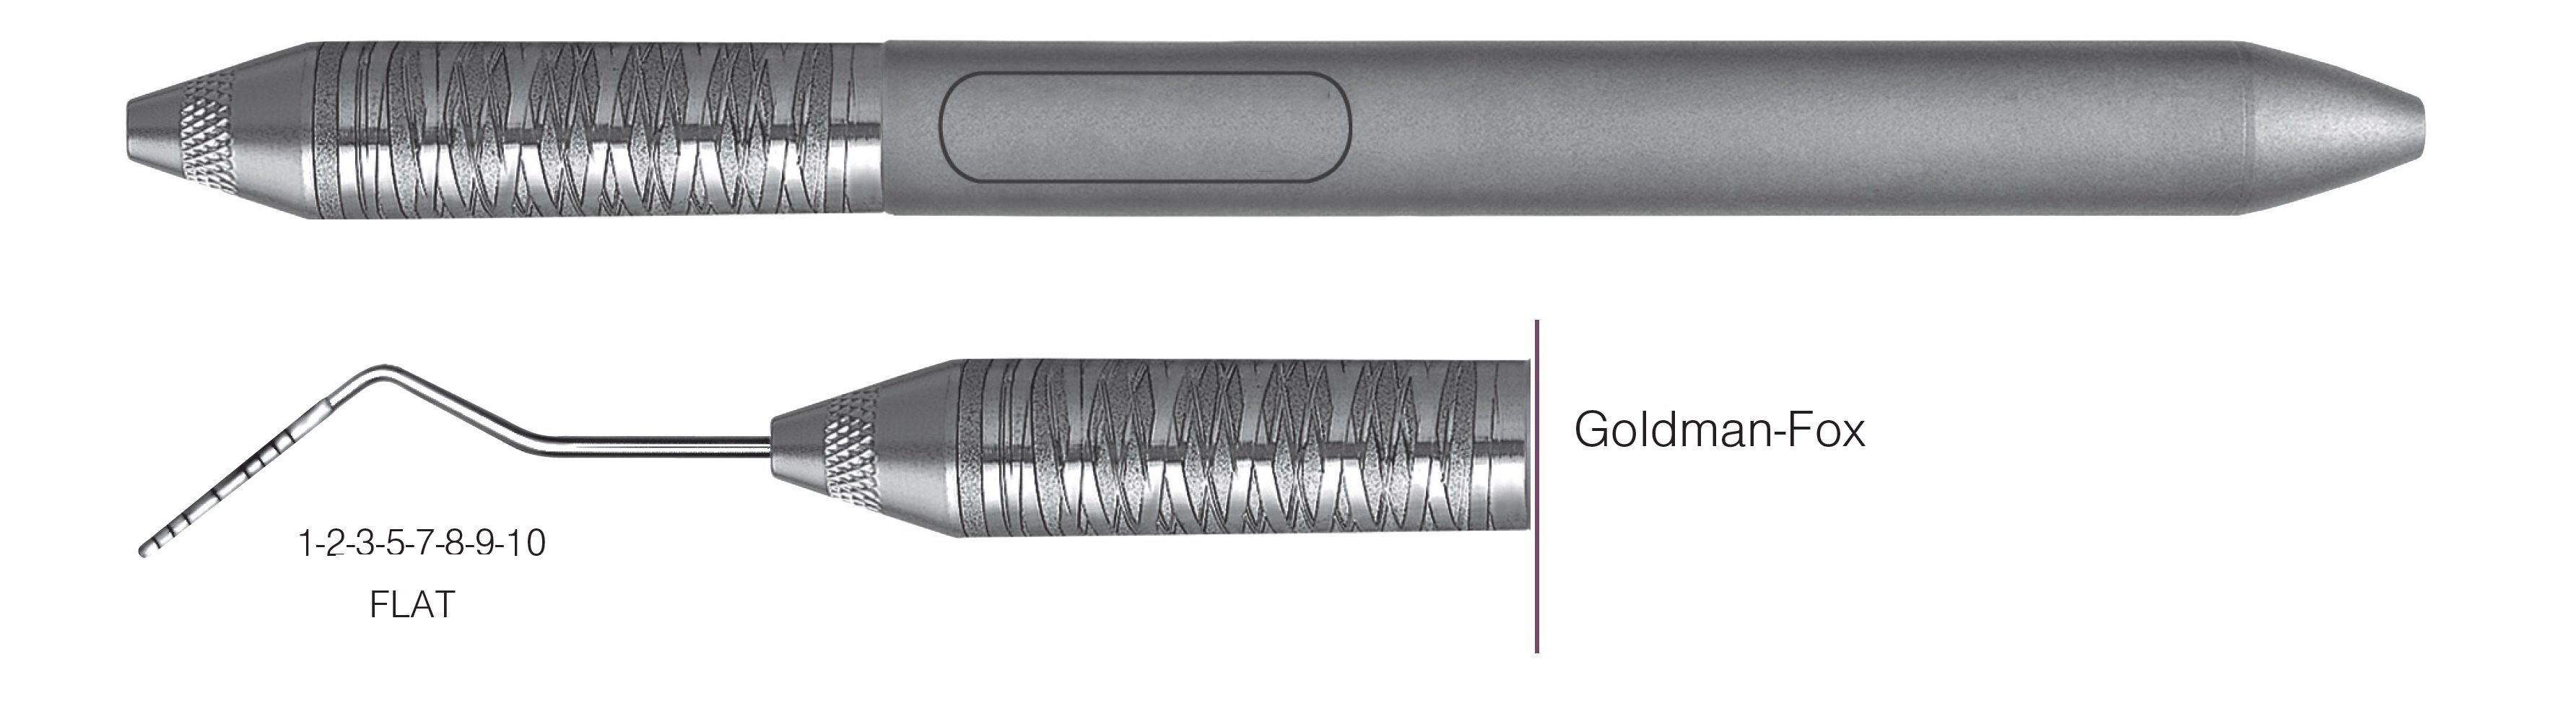 HF-PGF6-6, SINGLE-ENDED PROBES Goldman-Fox, Goldman-Fox probes feature a flat working end for easier insertion on lingual or facial surfaces, Black markings, 1-2-3-5-7-8-9-10 mm FLAT, Handle Satin Steel, Aluminum Titanium Nitride (AlTiN) Coating, Single End